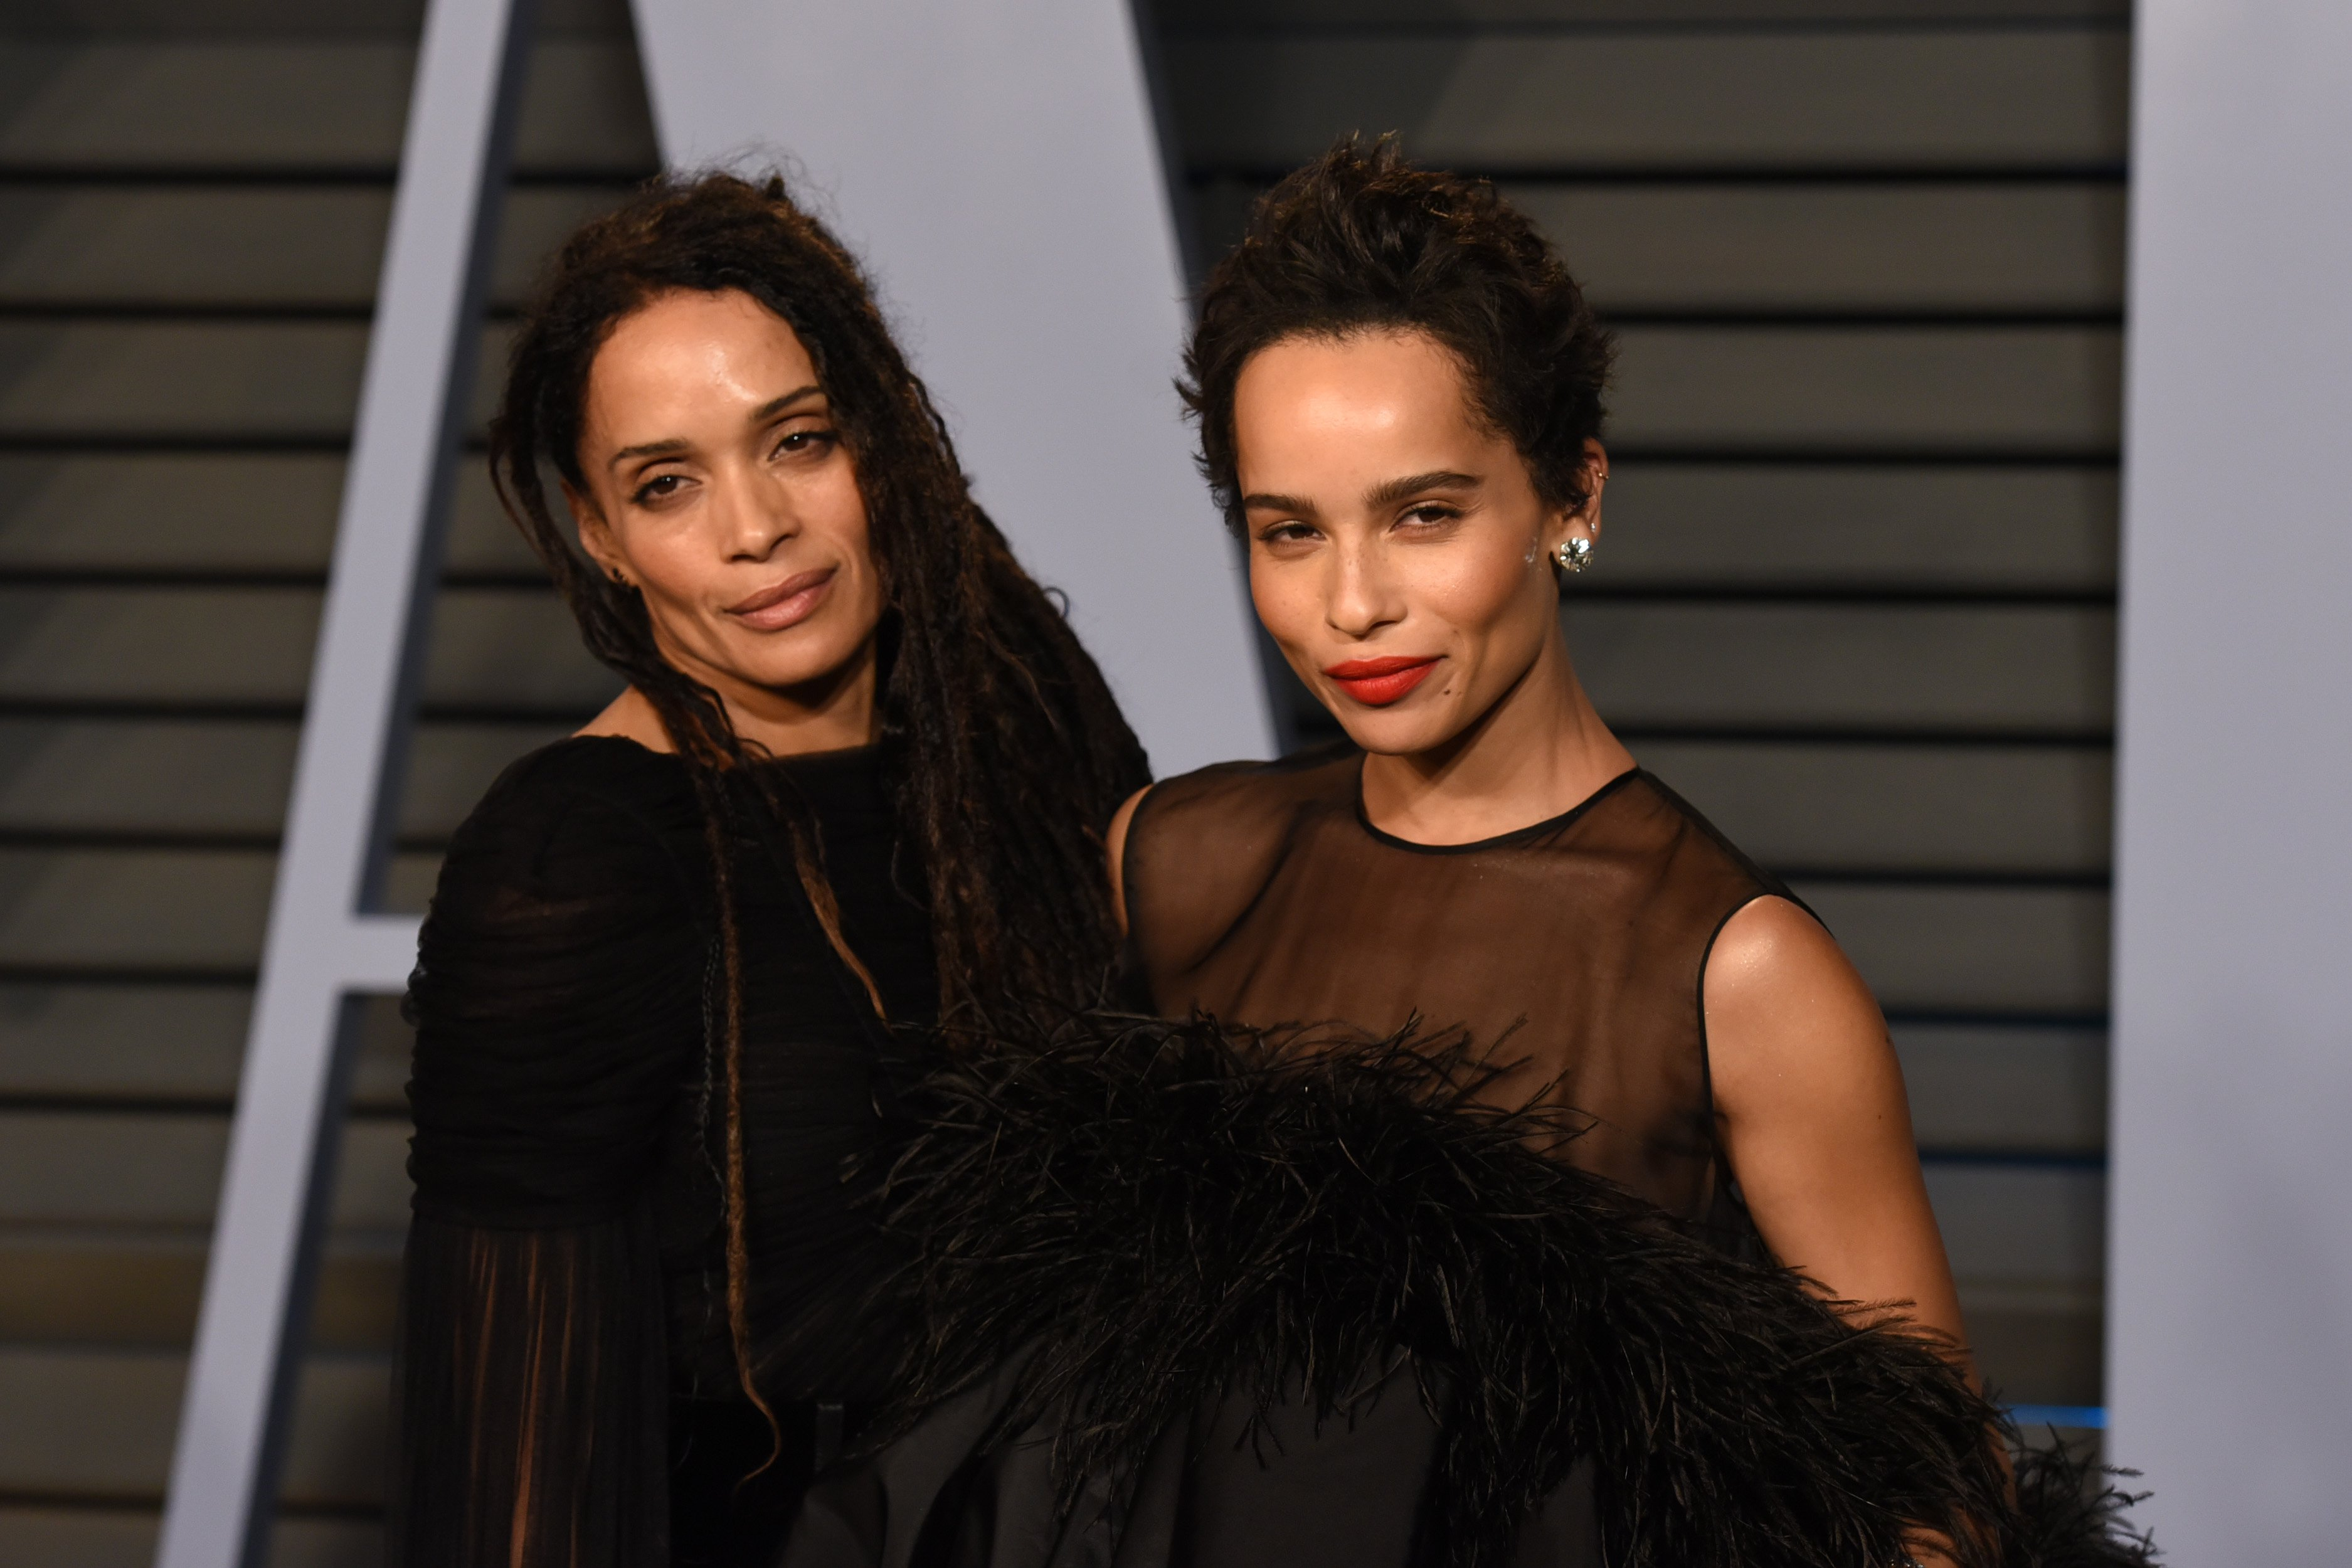 L'actrice et activiste Lisa Bonet avec sa fille Zoe Kravitz. | Photo: Getty Images